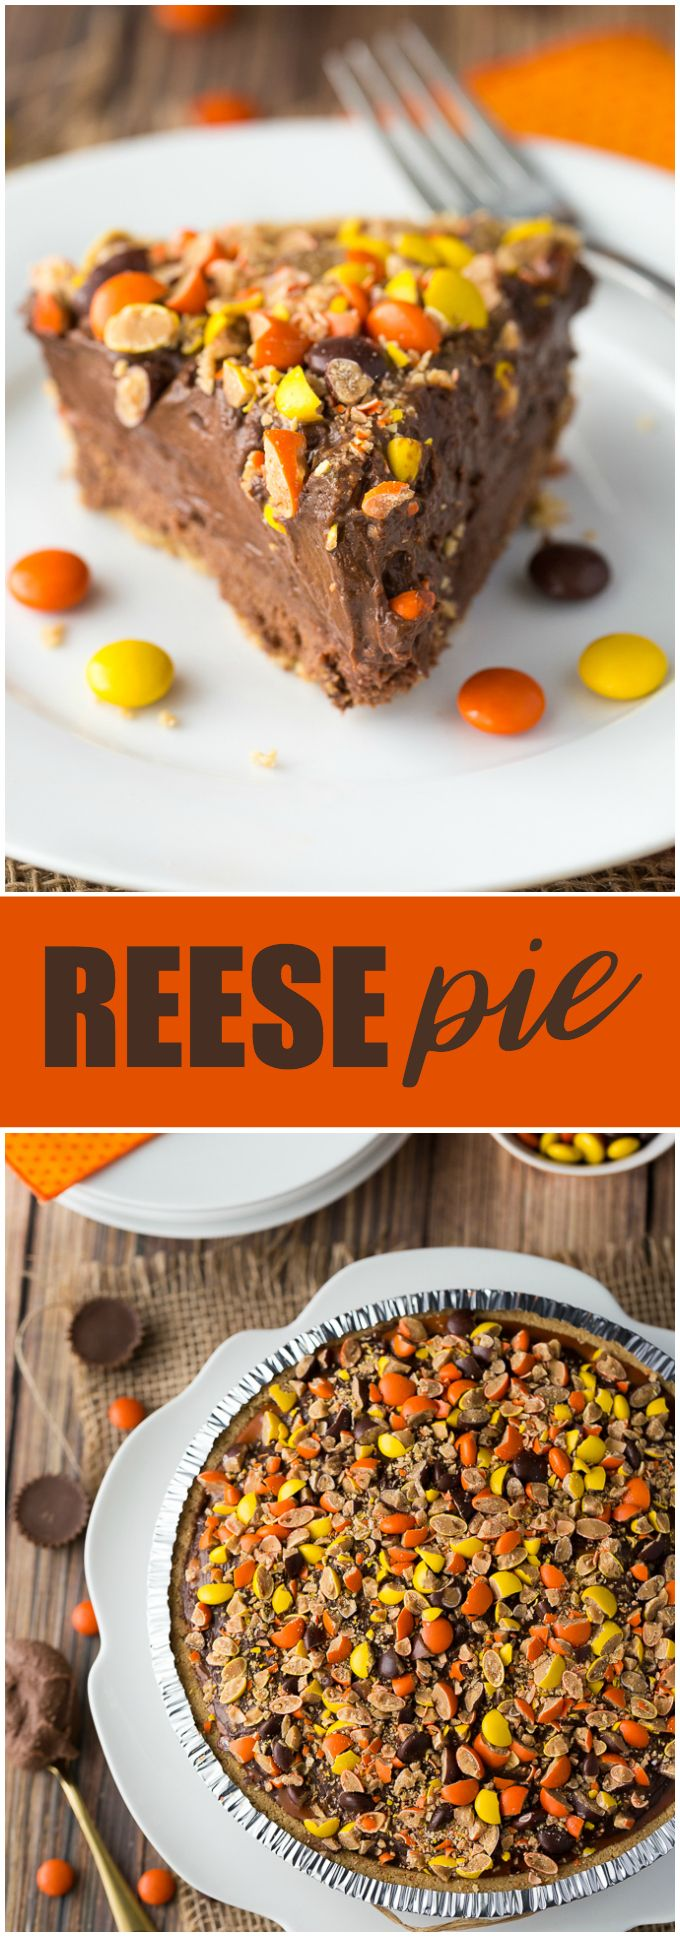 REESE Pie - This decadent no-bake dessert is all about REESE! It has a thick rich layer of REESE Spreads followed by a layer of REESE Peanut Butter Cups. Top that with a creamy, smooth chocolate/peanut butter pudding layer and a REESE'S Pieces colourful finish. #DoYouSpoon #ad